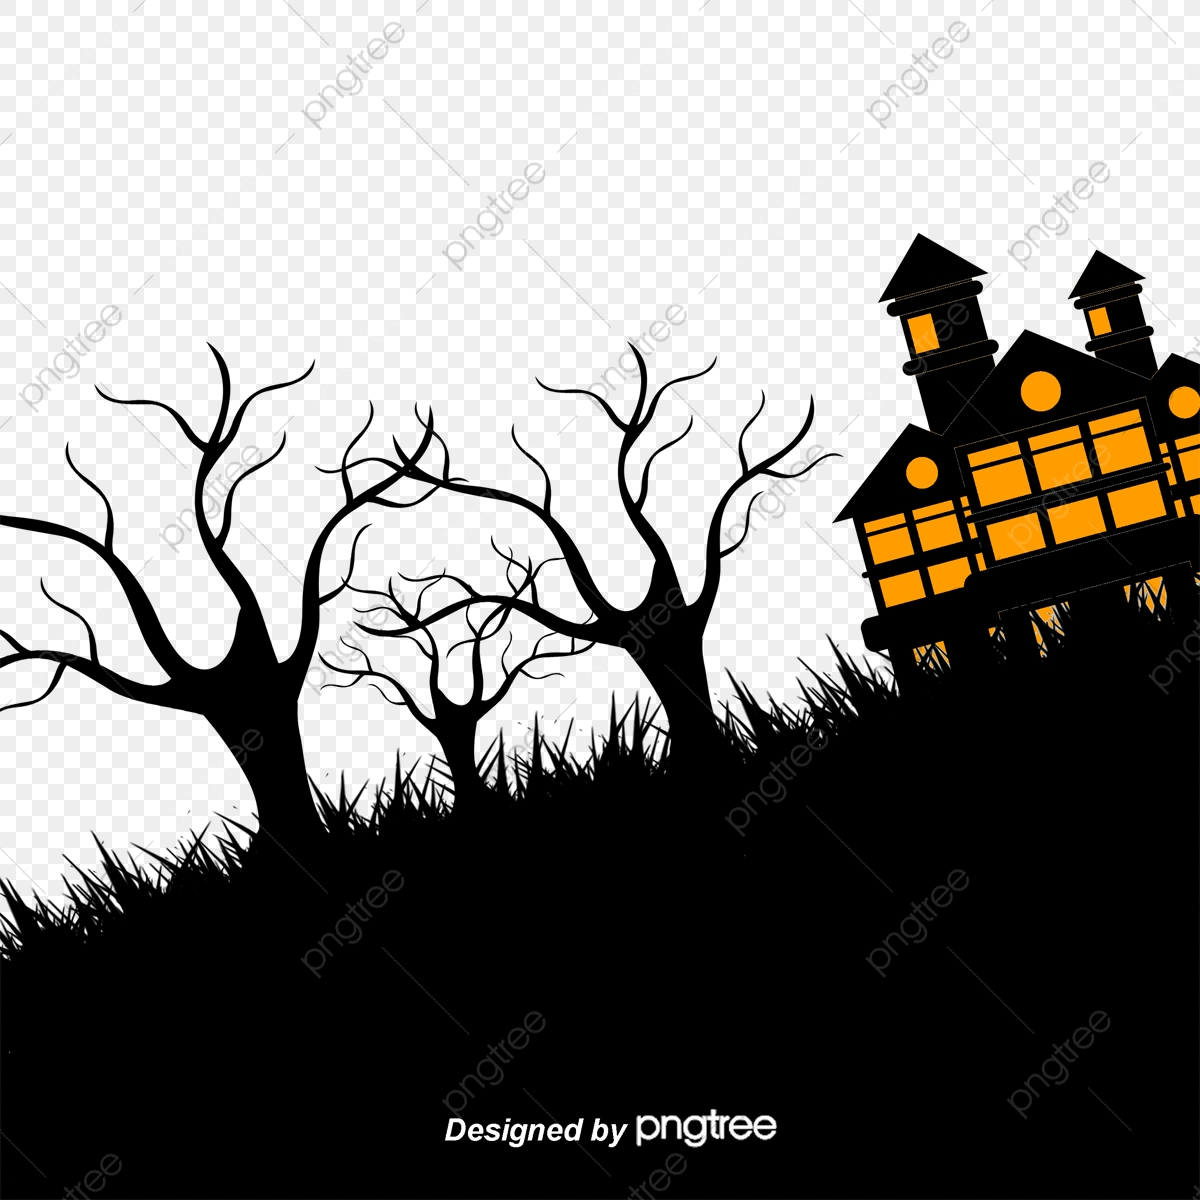 Halloween Vector Black And White.Halloween Black Mountain House Halloween Vector Mountain Png And